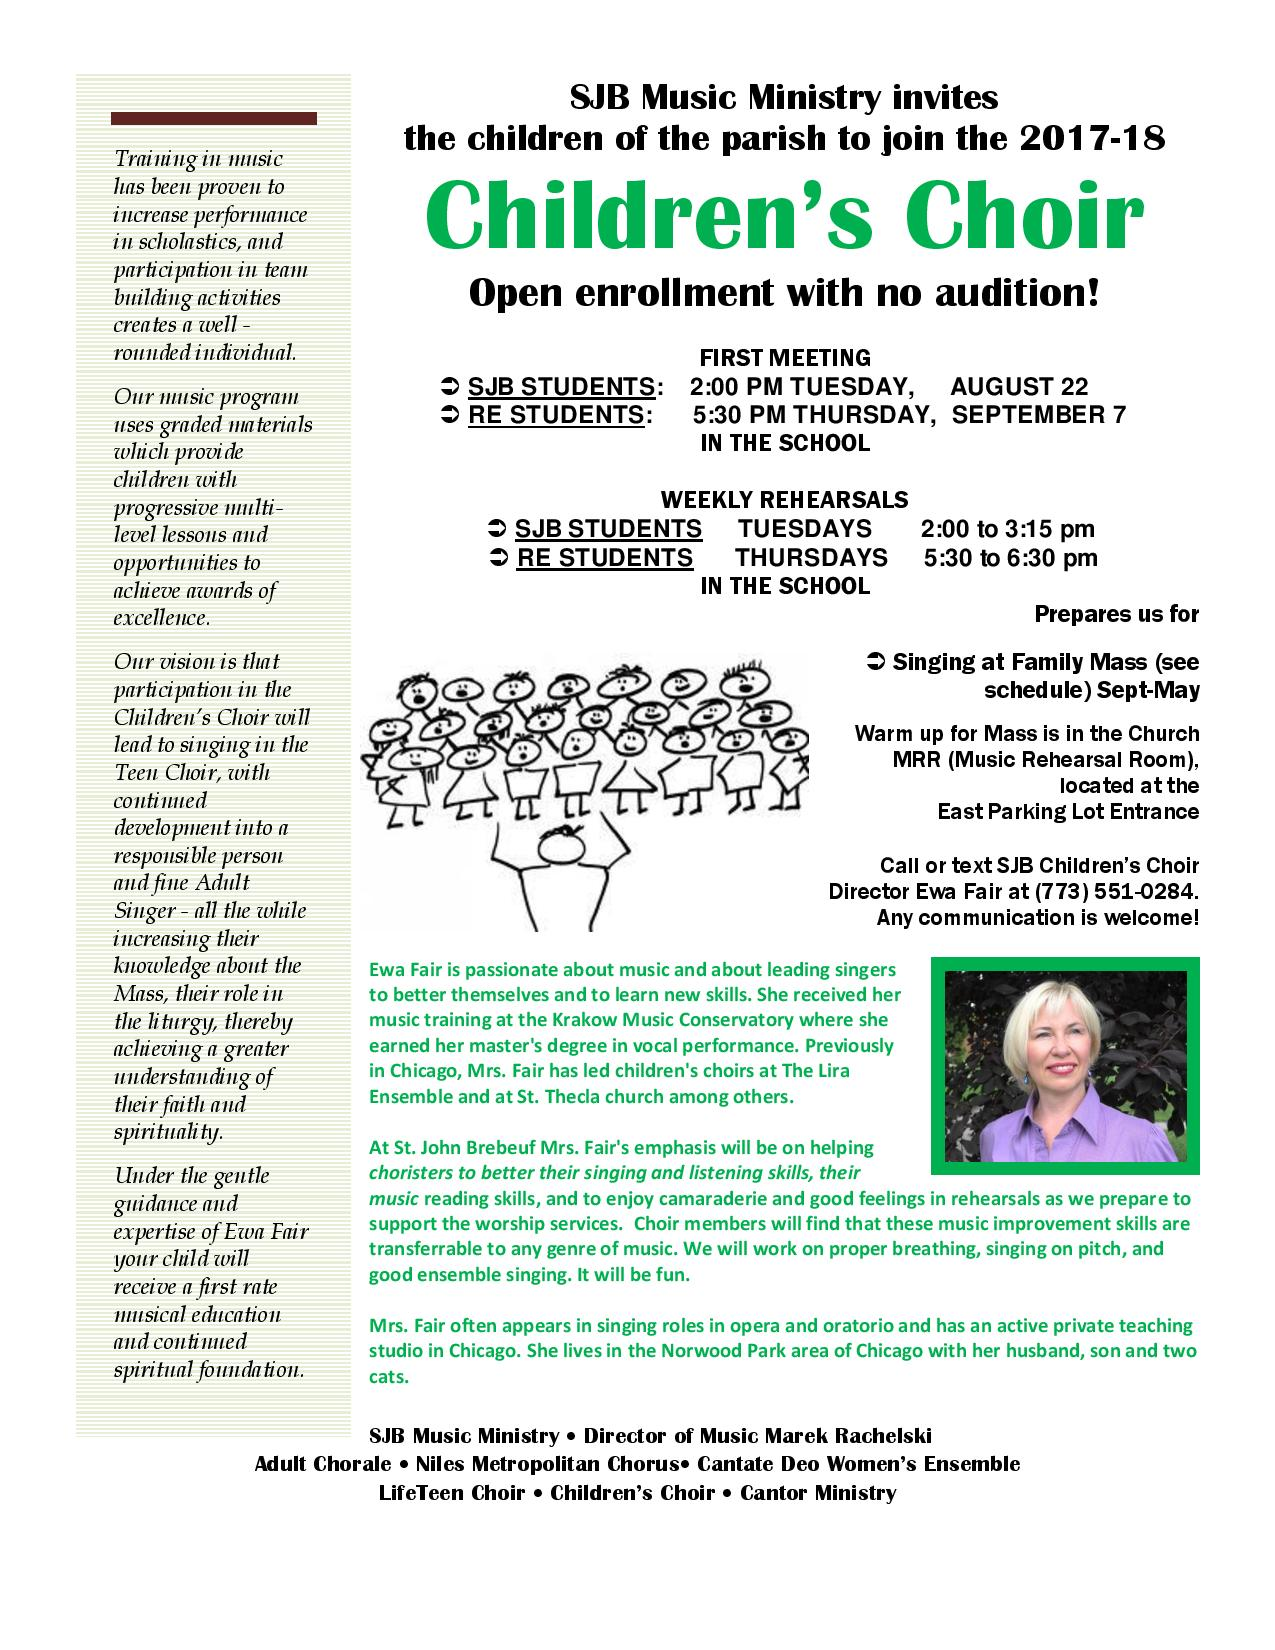 SJB MM childrenchoir handout 17-18-page-001